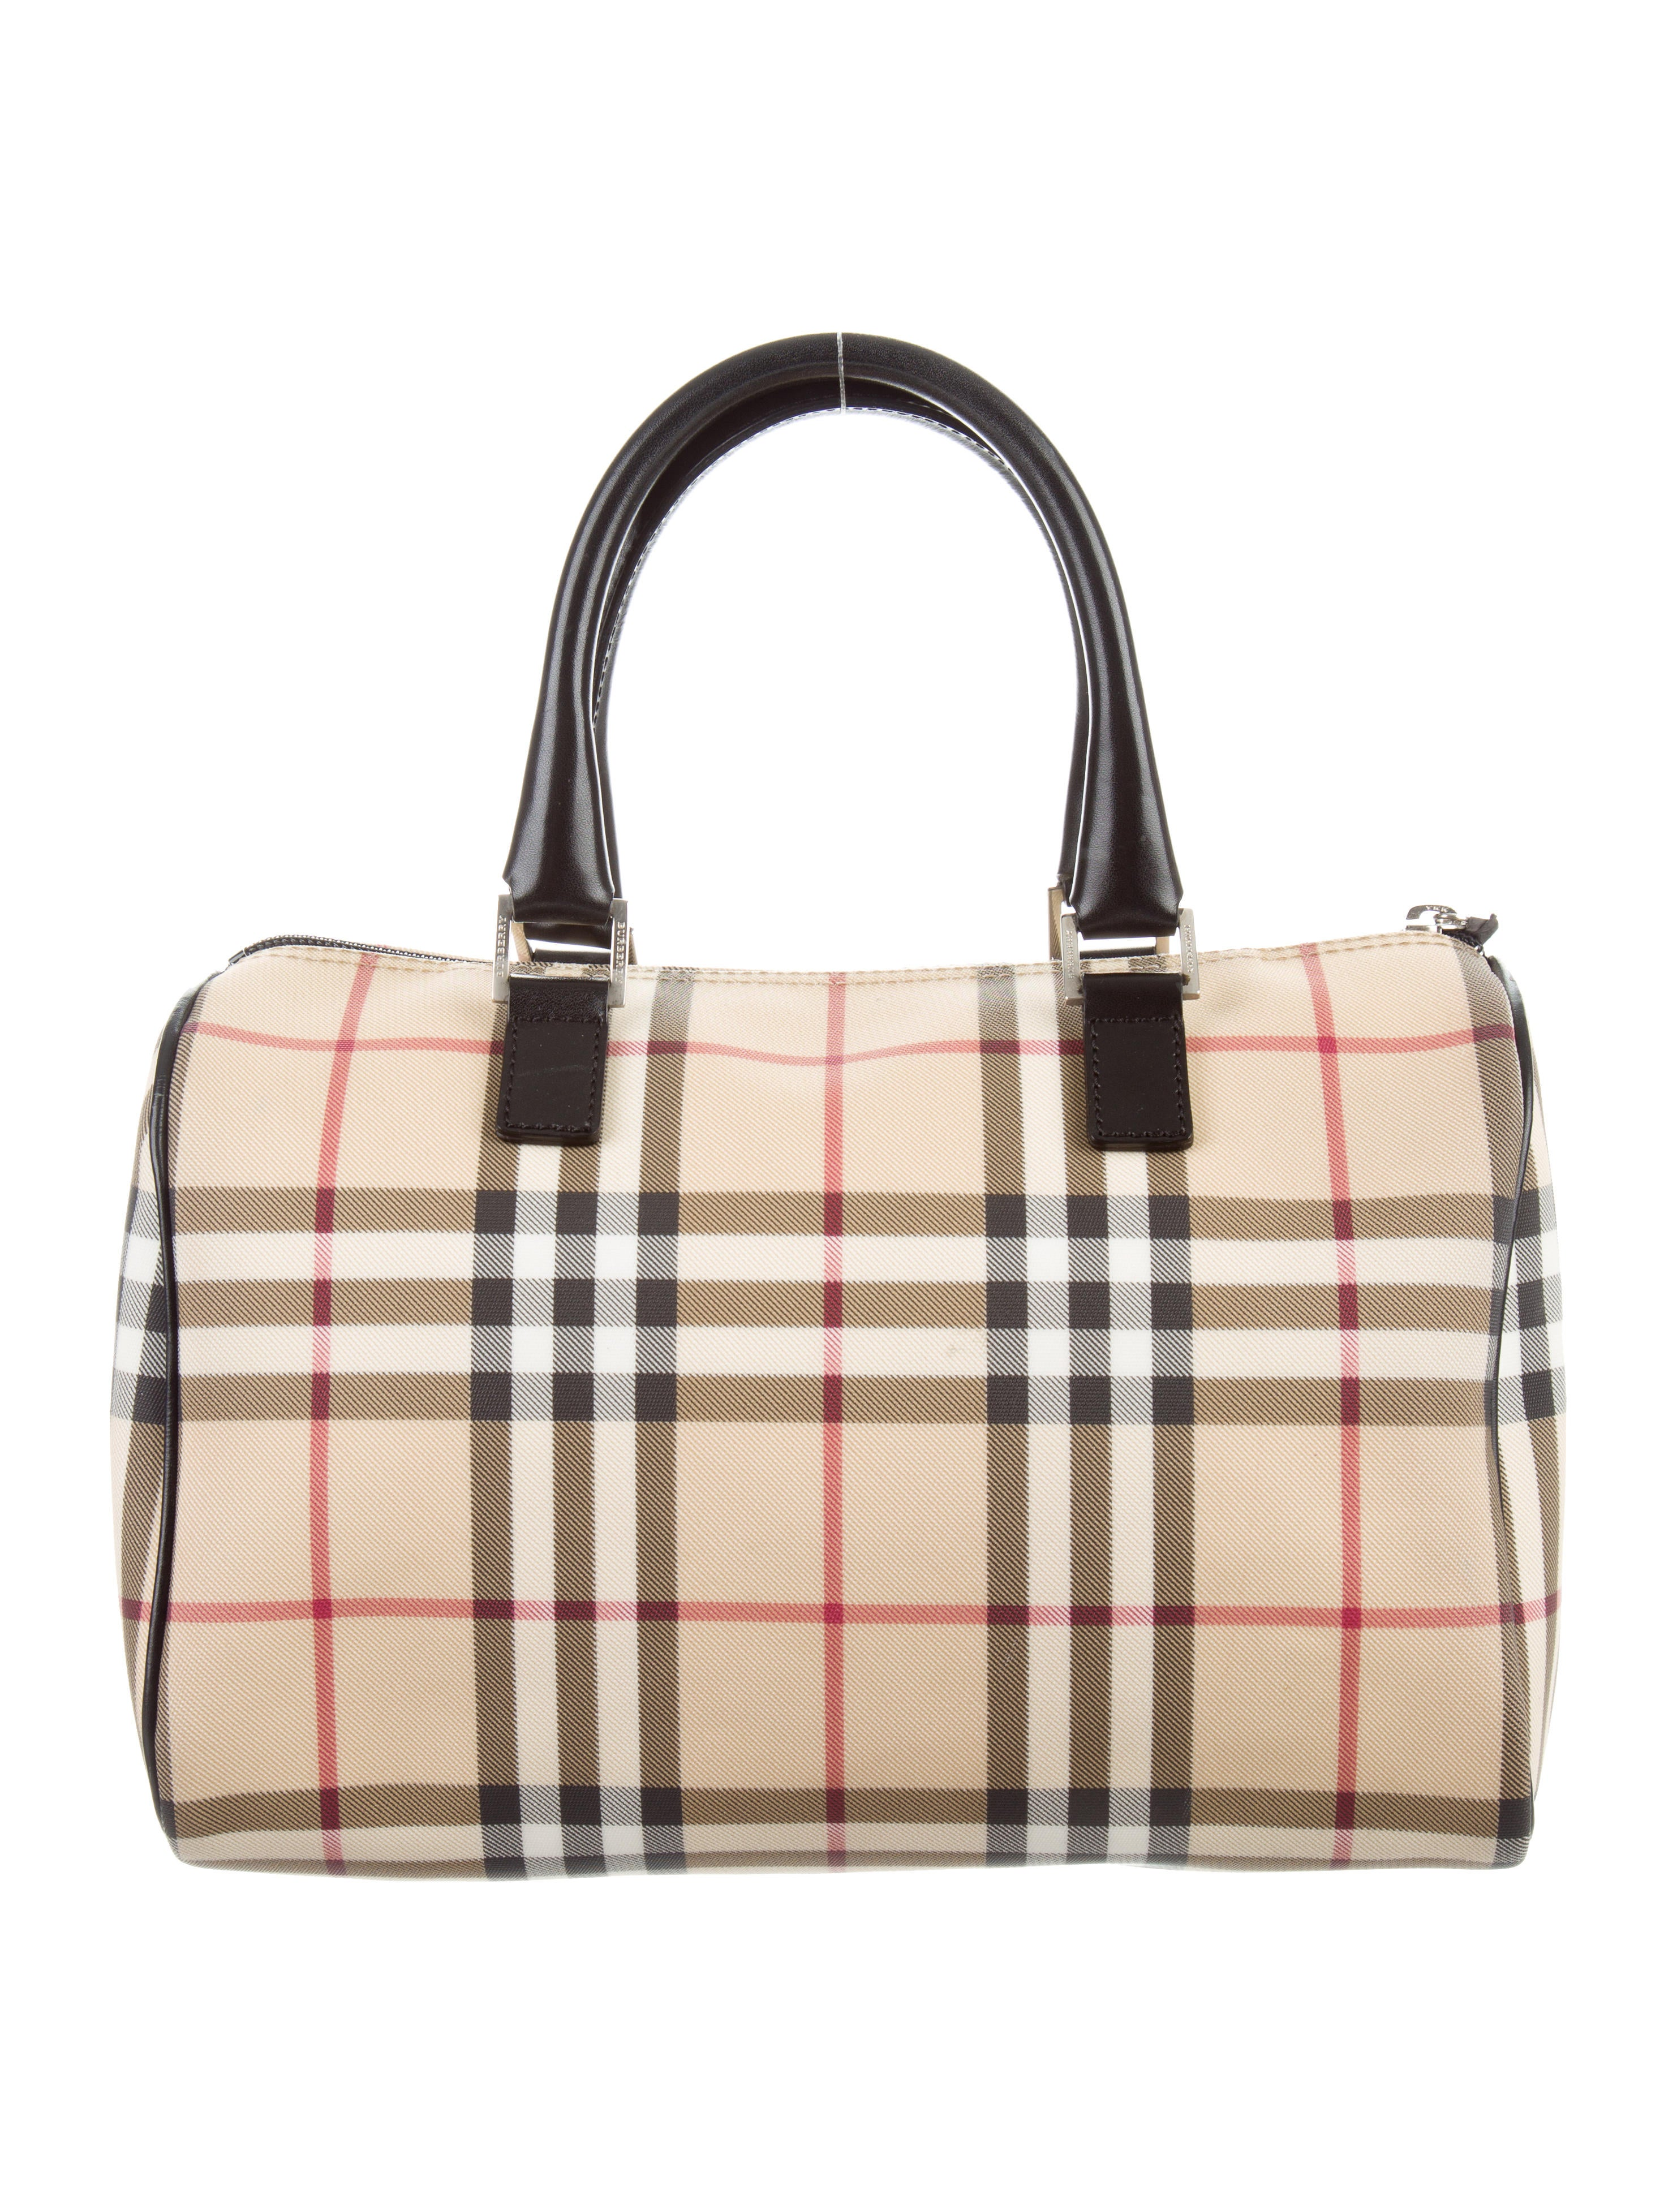 Burberry Nova Check Chester Bag - Handbags - BUR77357  36db736073cbc